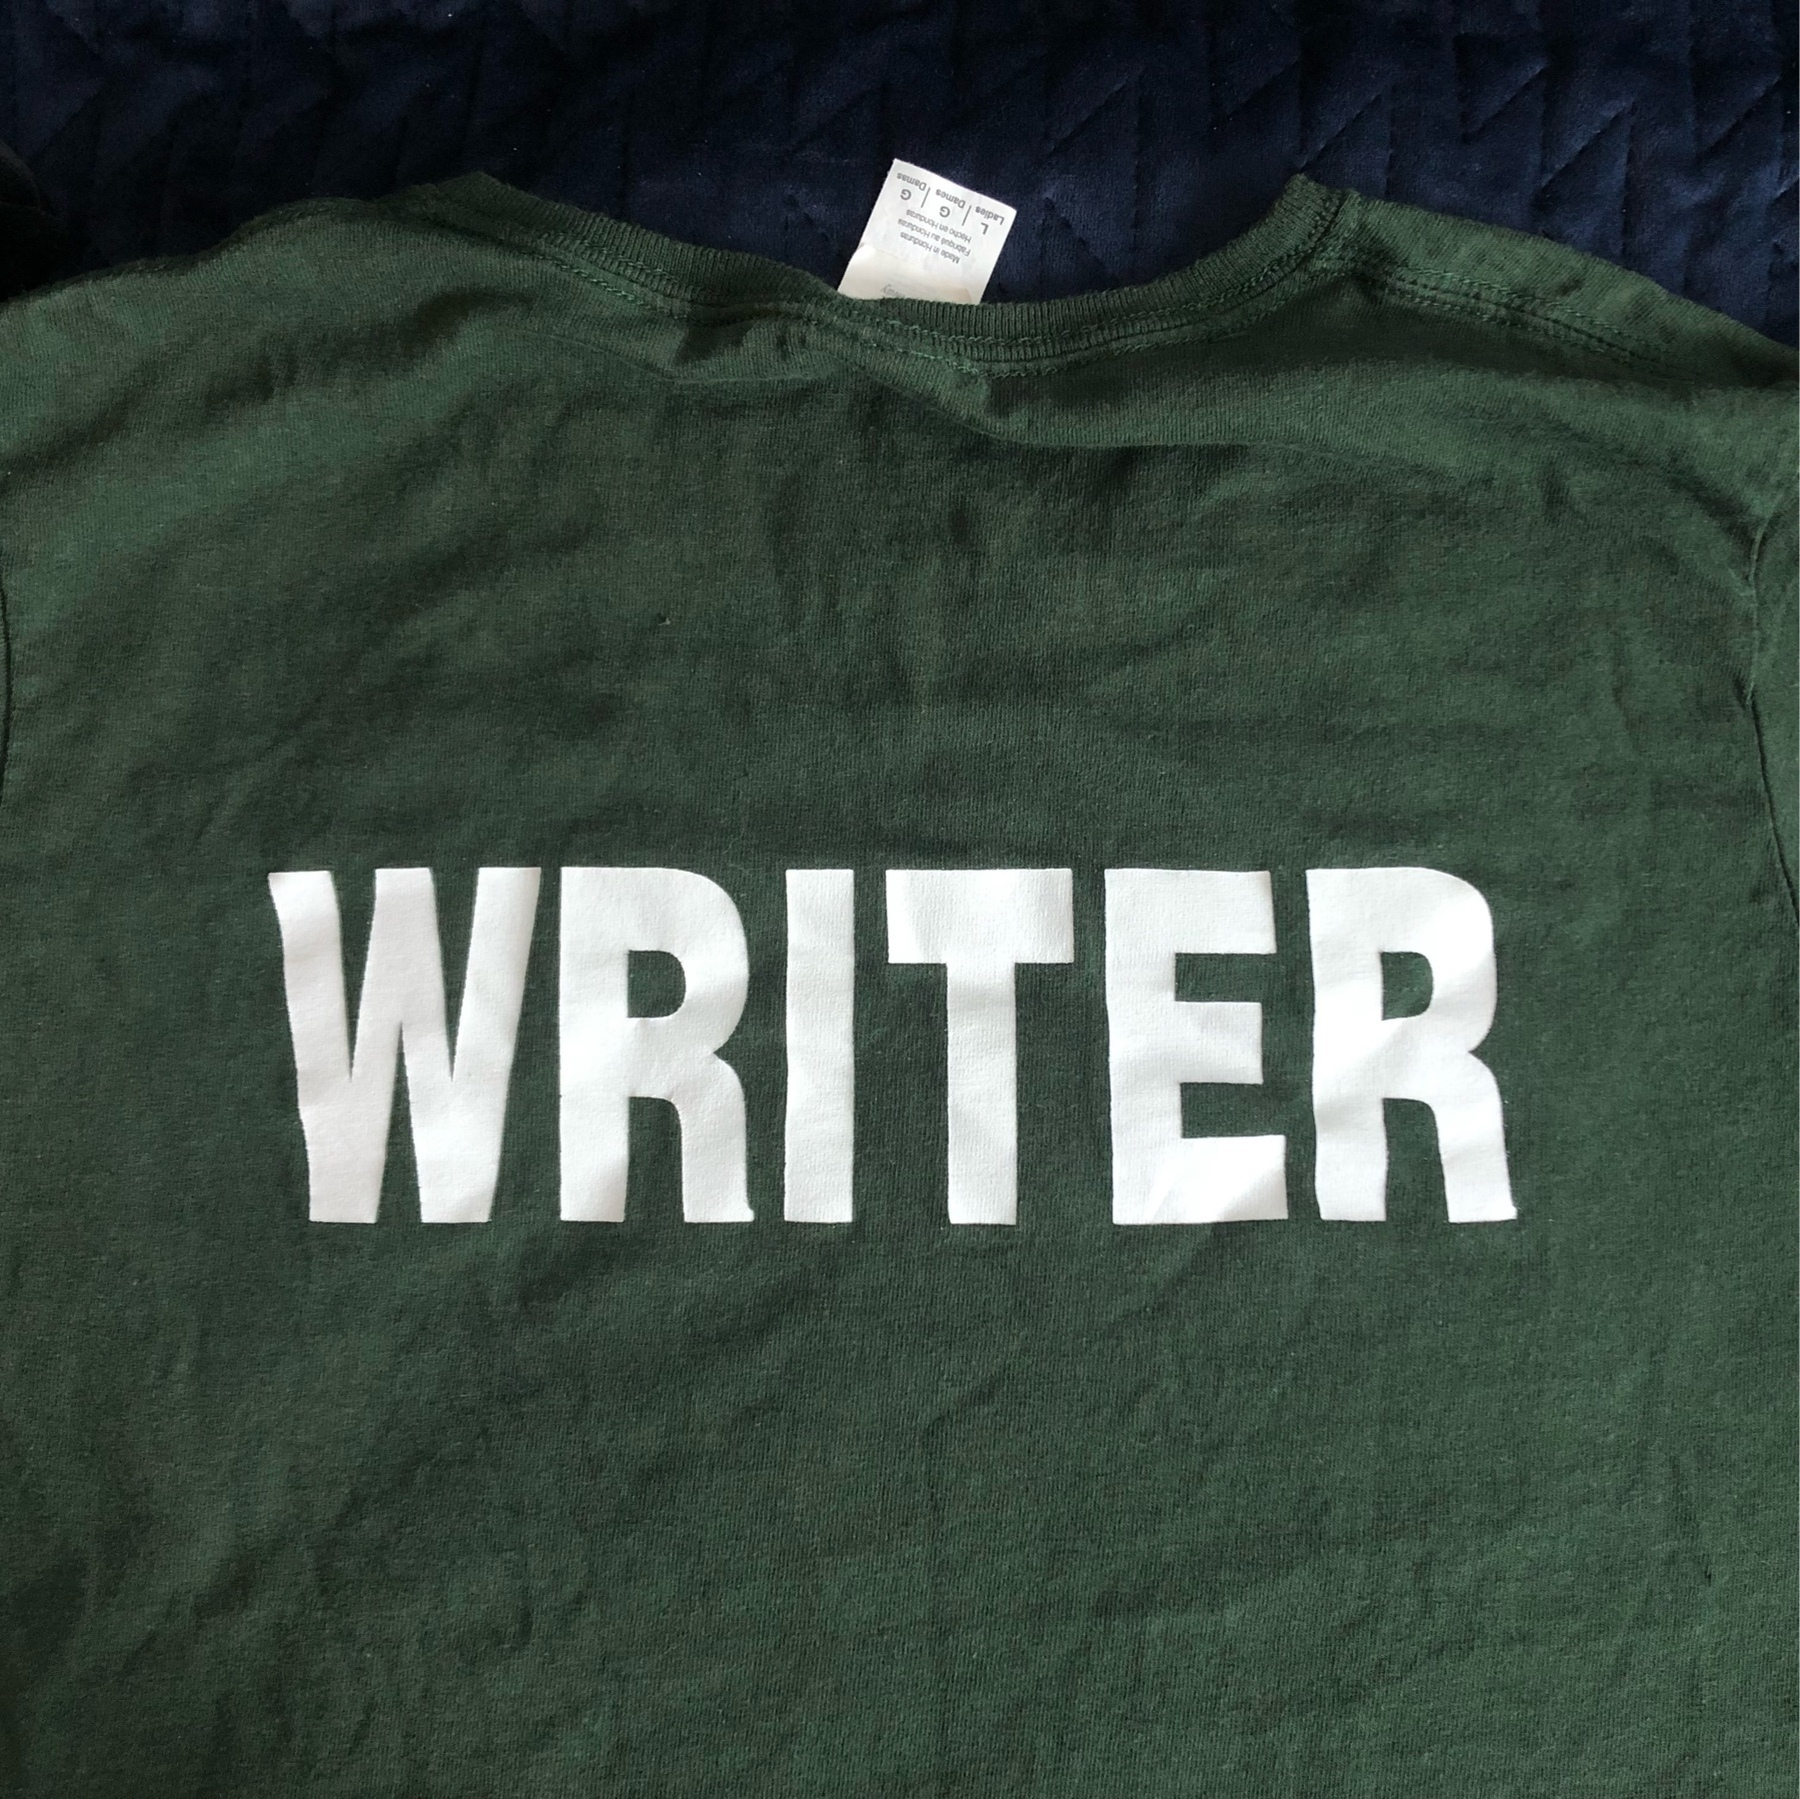 The back of a T-shirt that says WRITER in huge text.